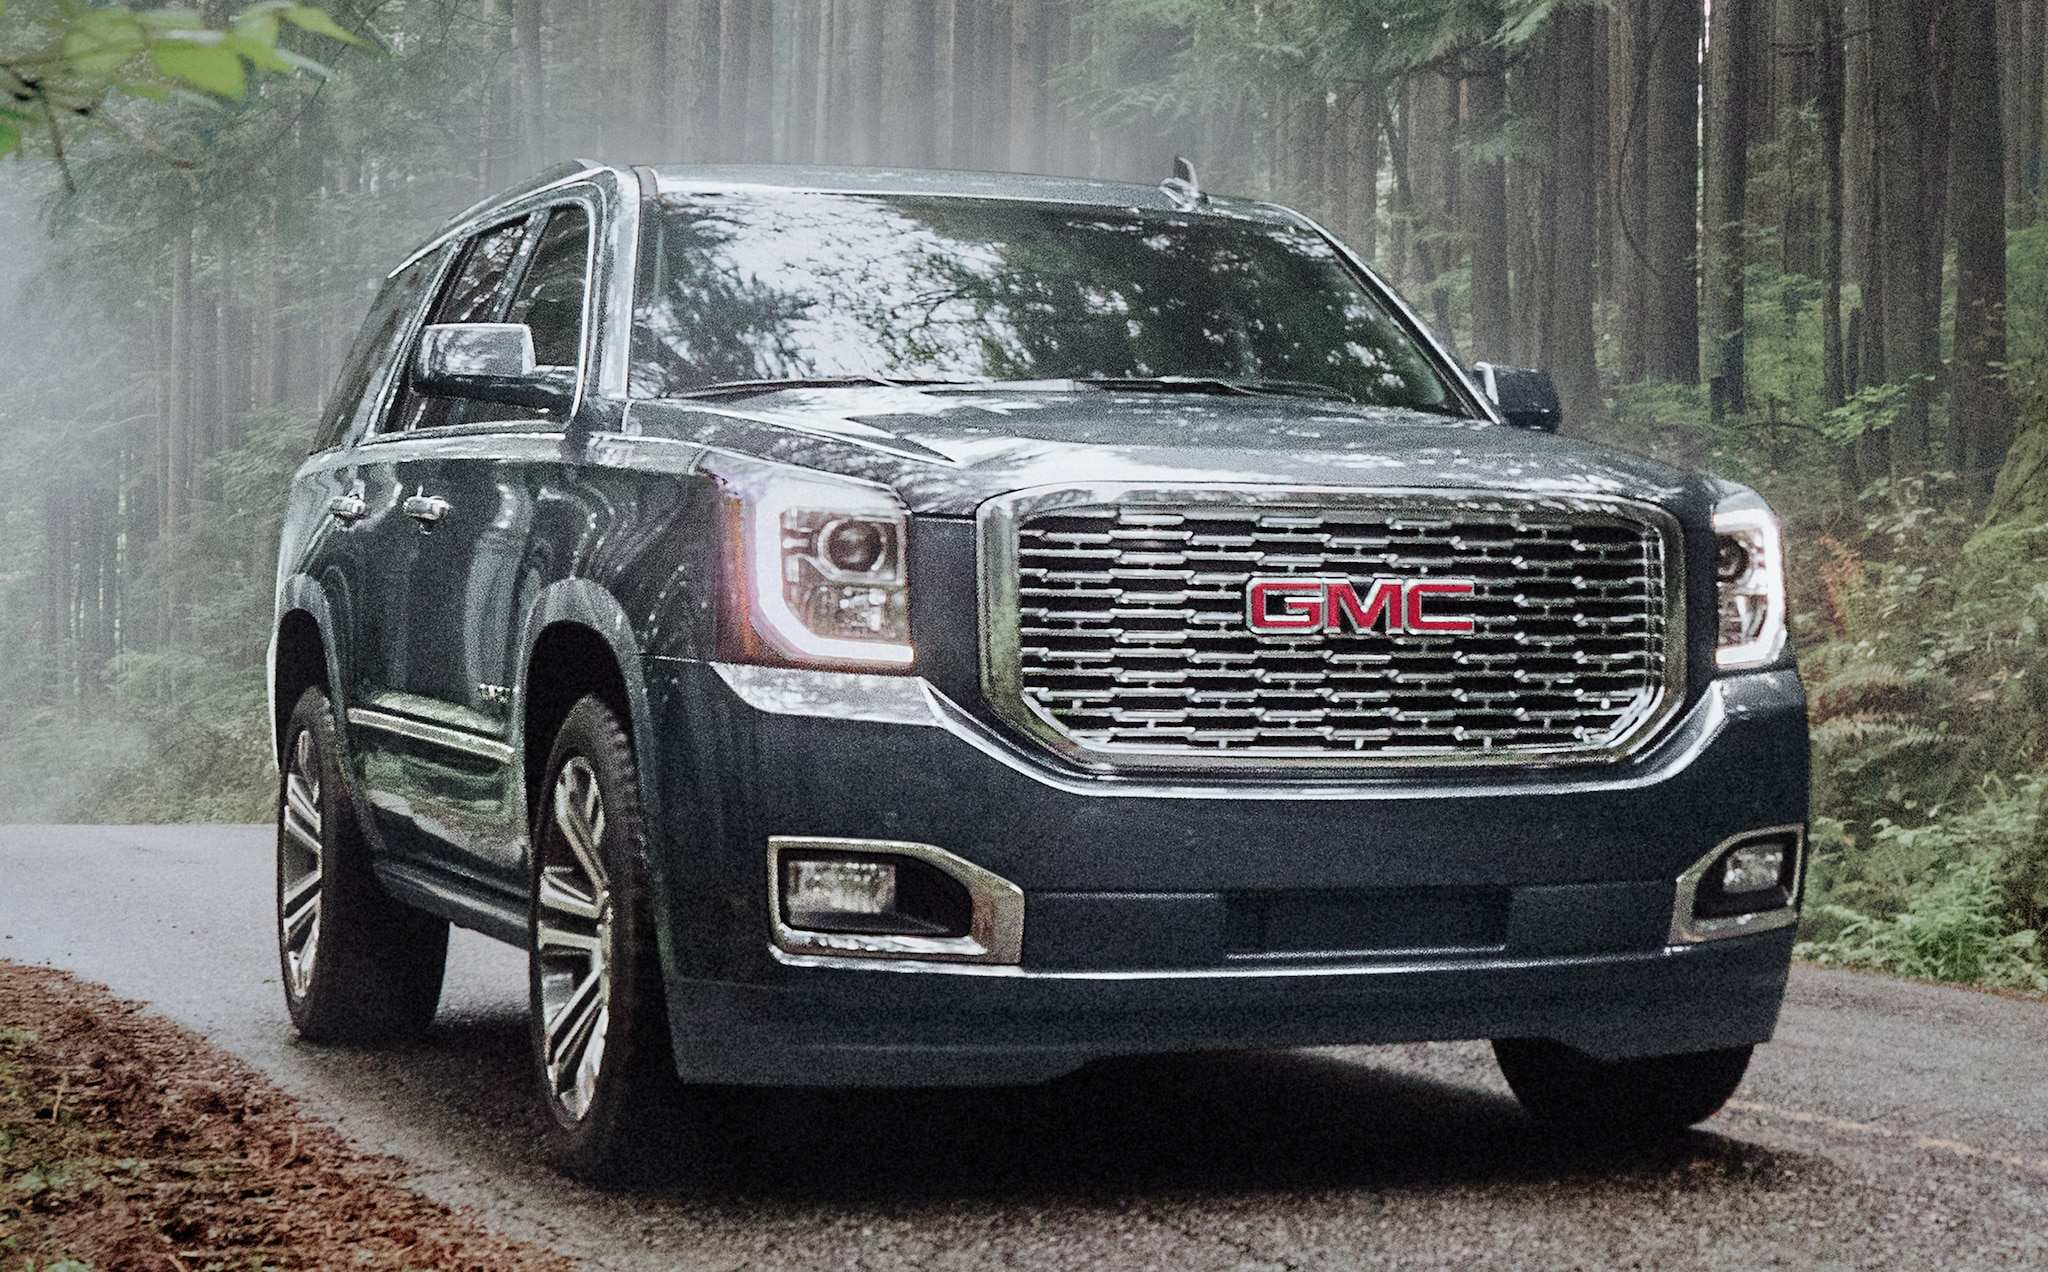 23 Gallery of 2020 Gmc Yukon Xl Slt Reviews by 2020 Gmc Yukon Xl Slt